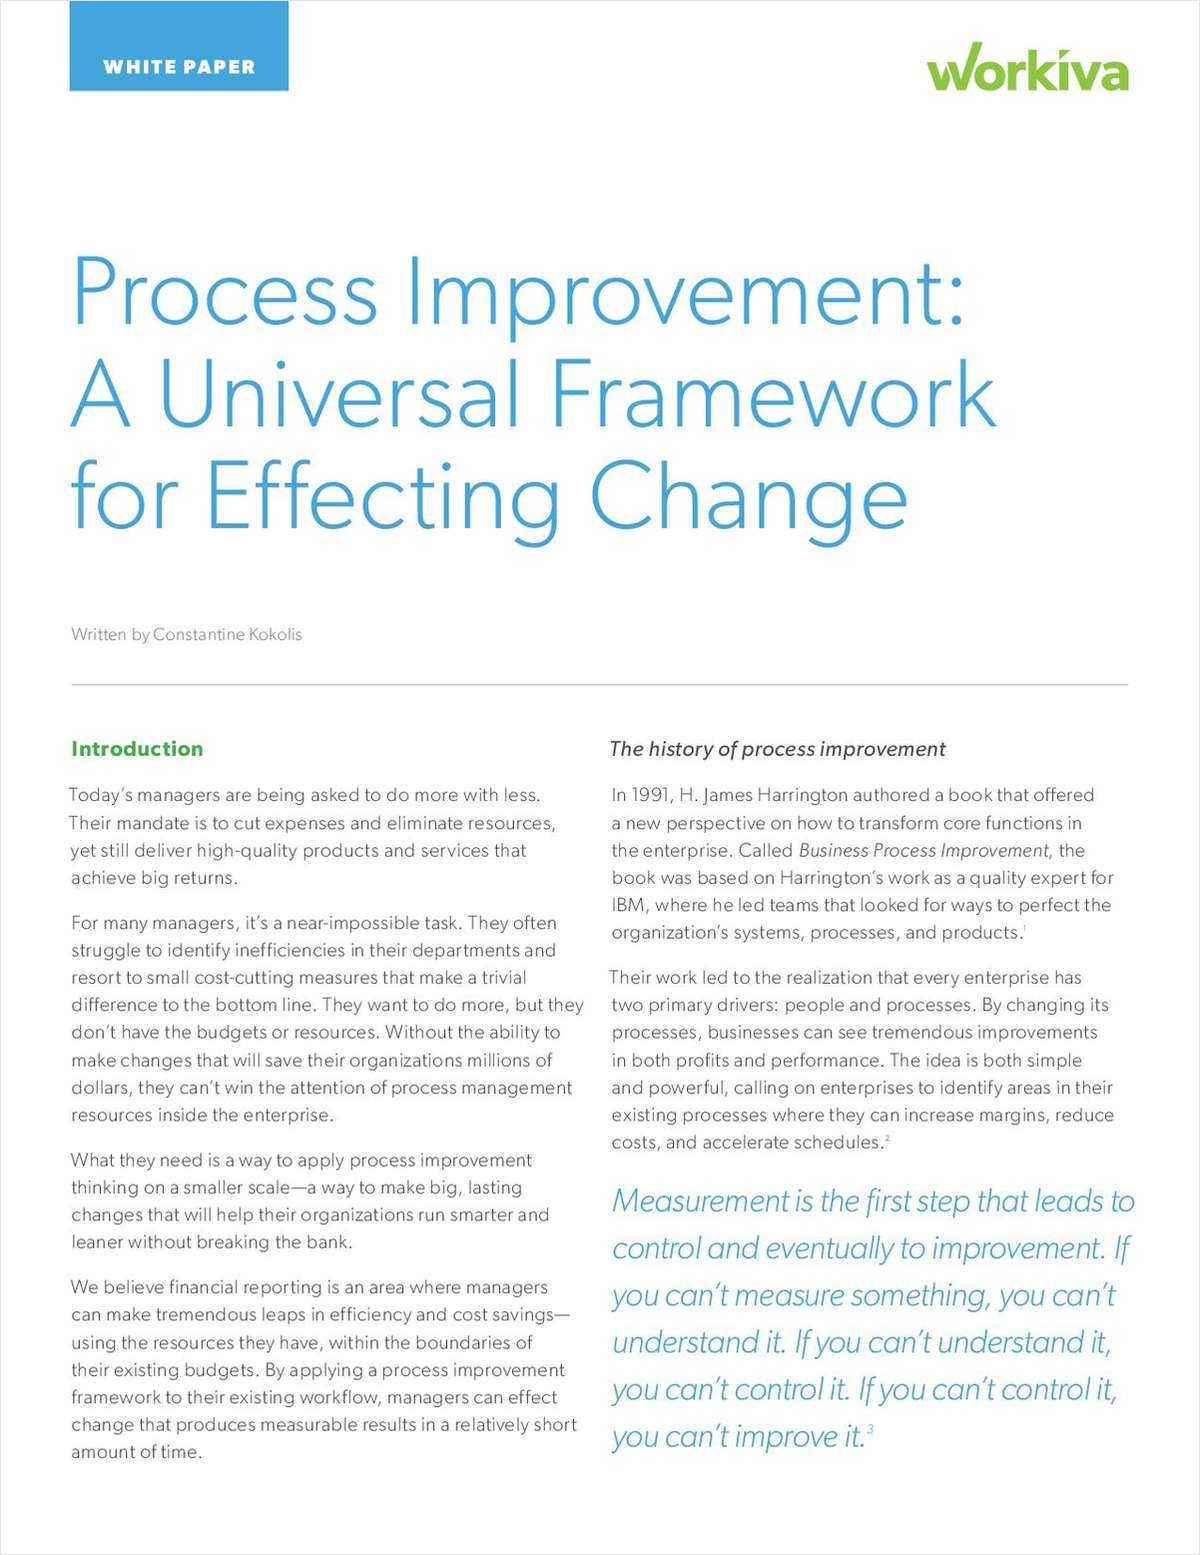 Process Improvement: A Universal Framework and Why It Matters